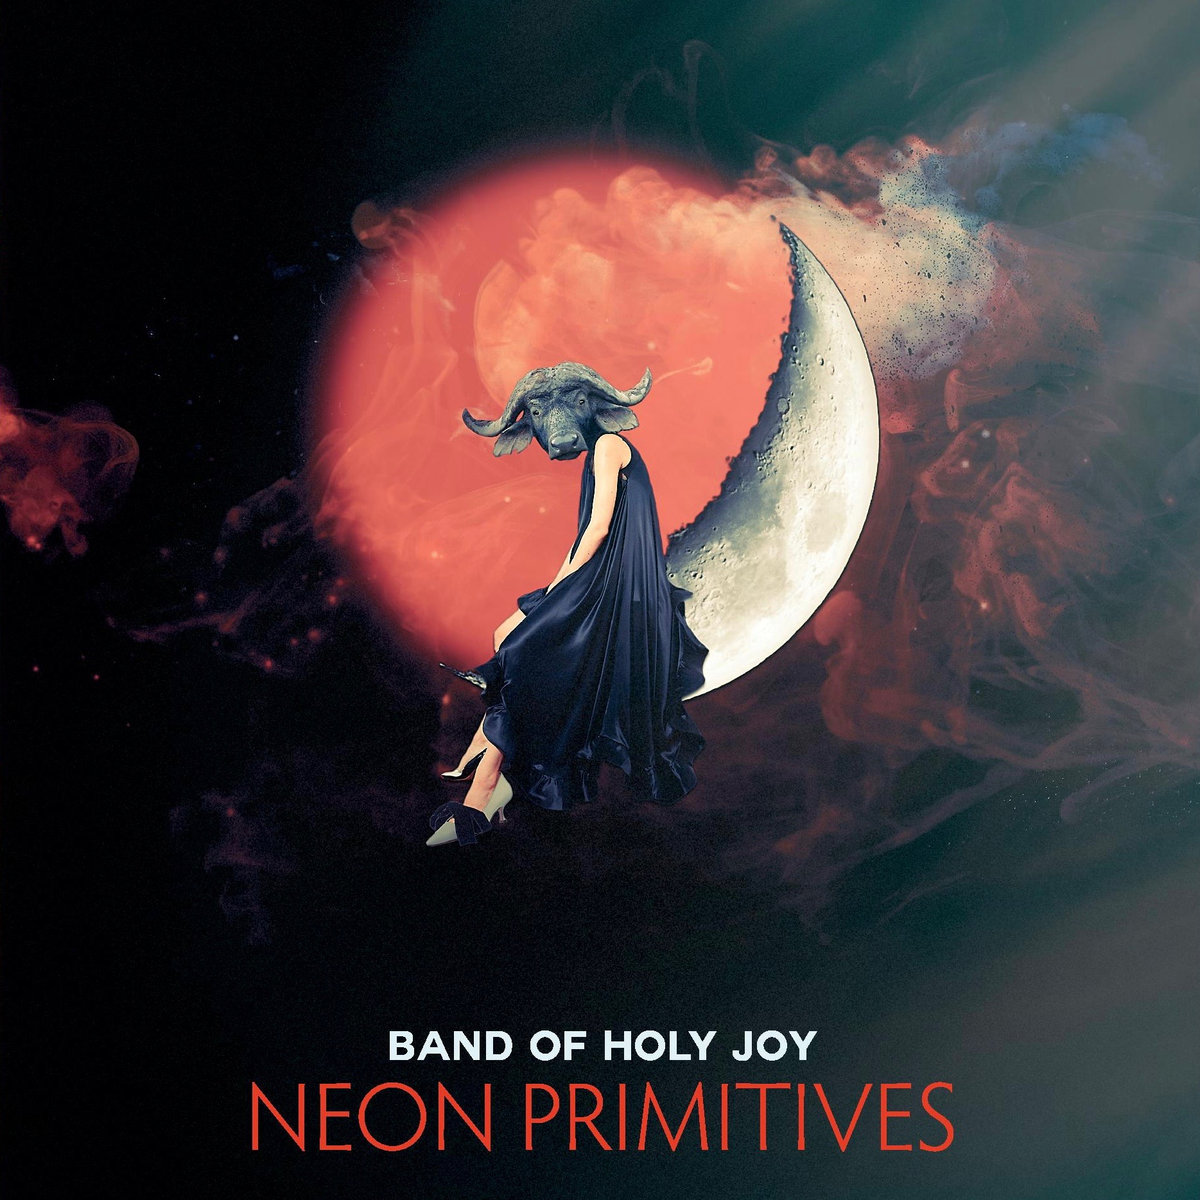 """BAND OF HOLY JOY """"Neon Primitives"""" Review"""